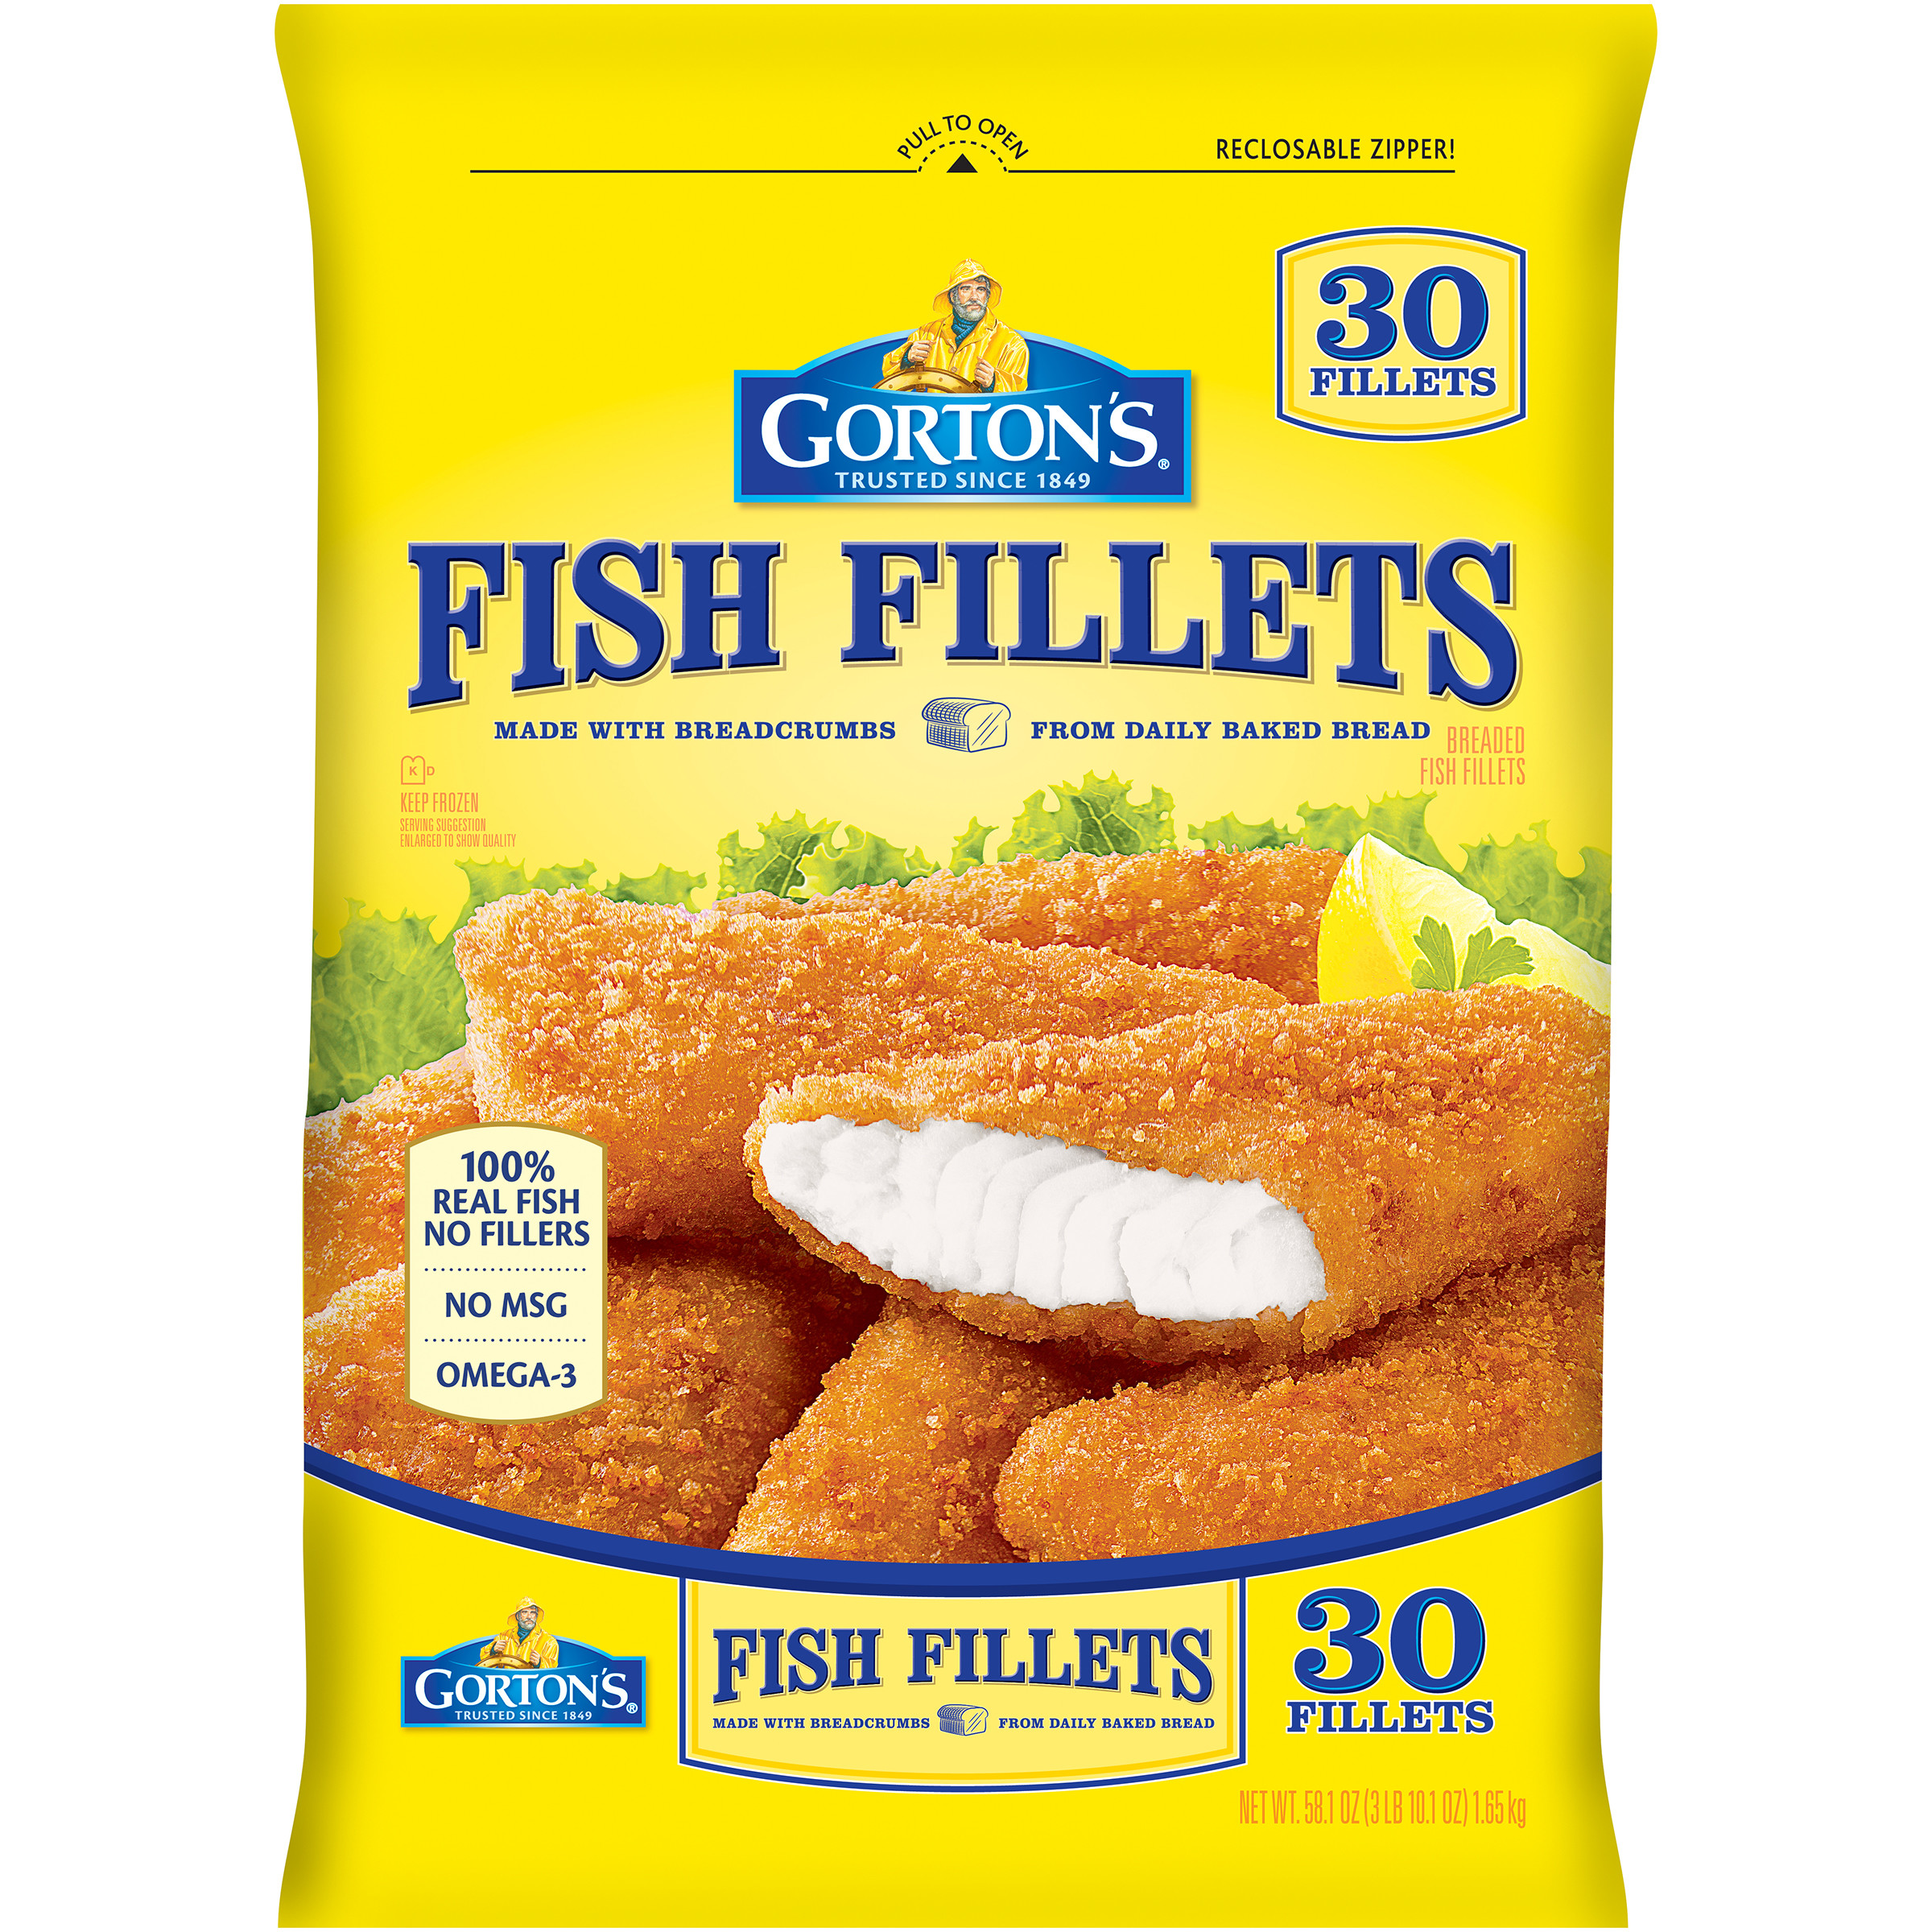 Gorton's Crunchy Breaded Fish Fillets, 30 count